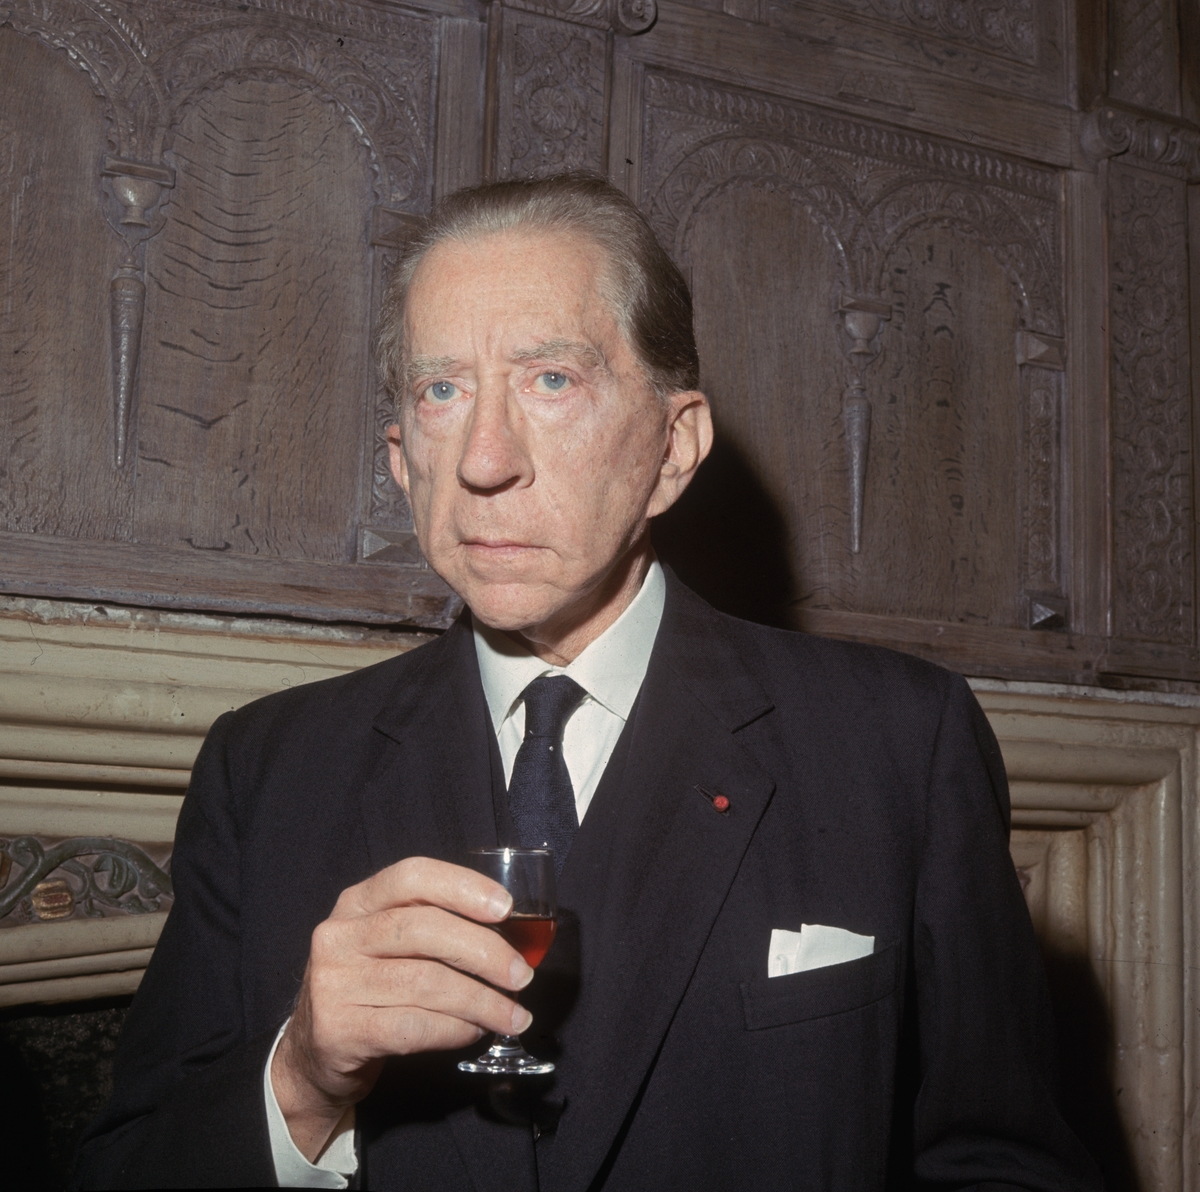 Oil multi-millionaire and art collector, J. Paul Getty (1892 - 1976) with a glass of wine.